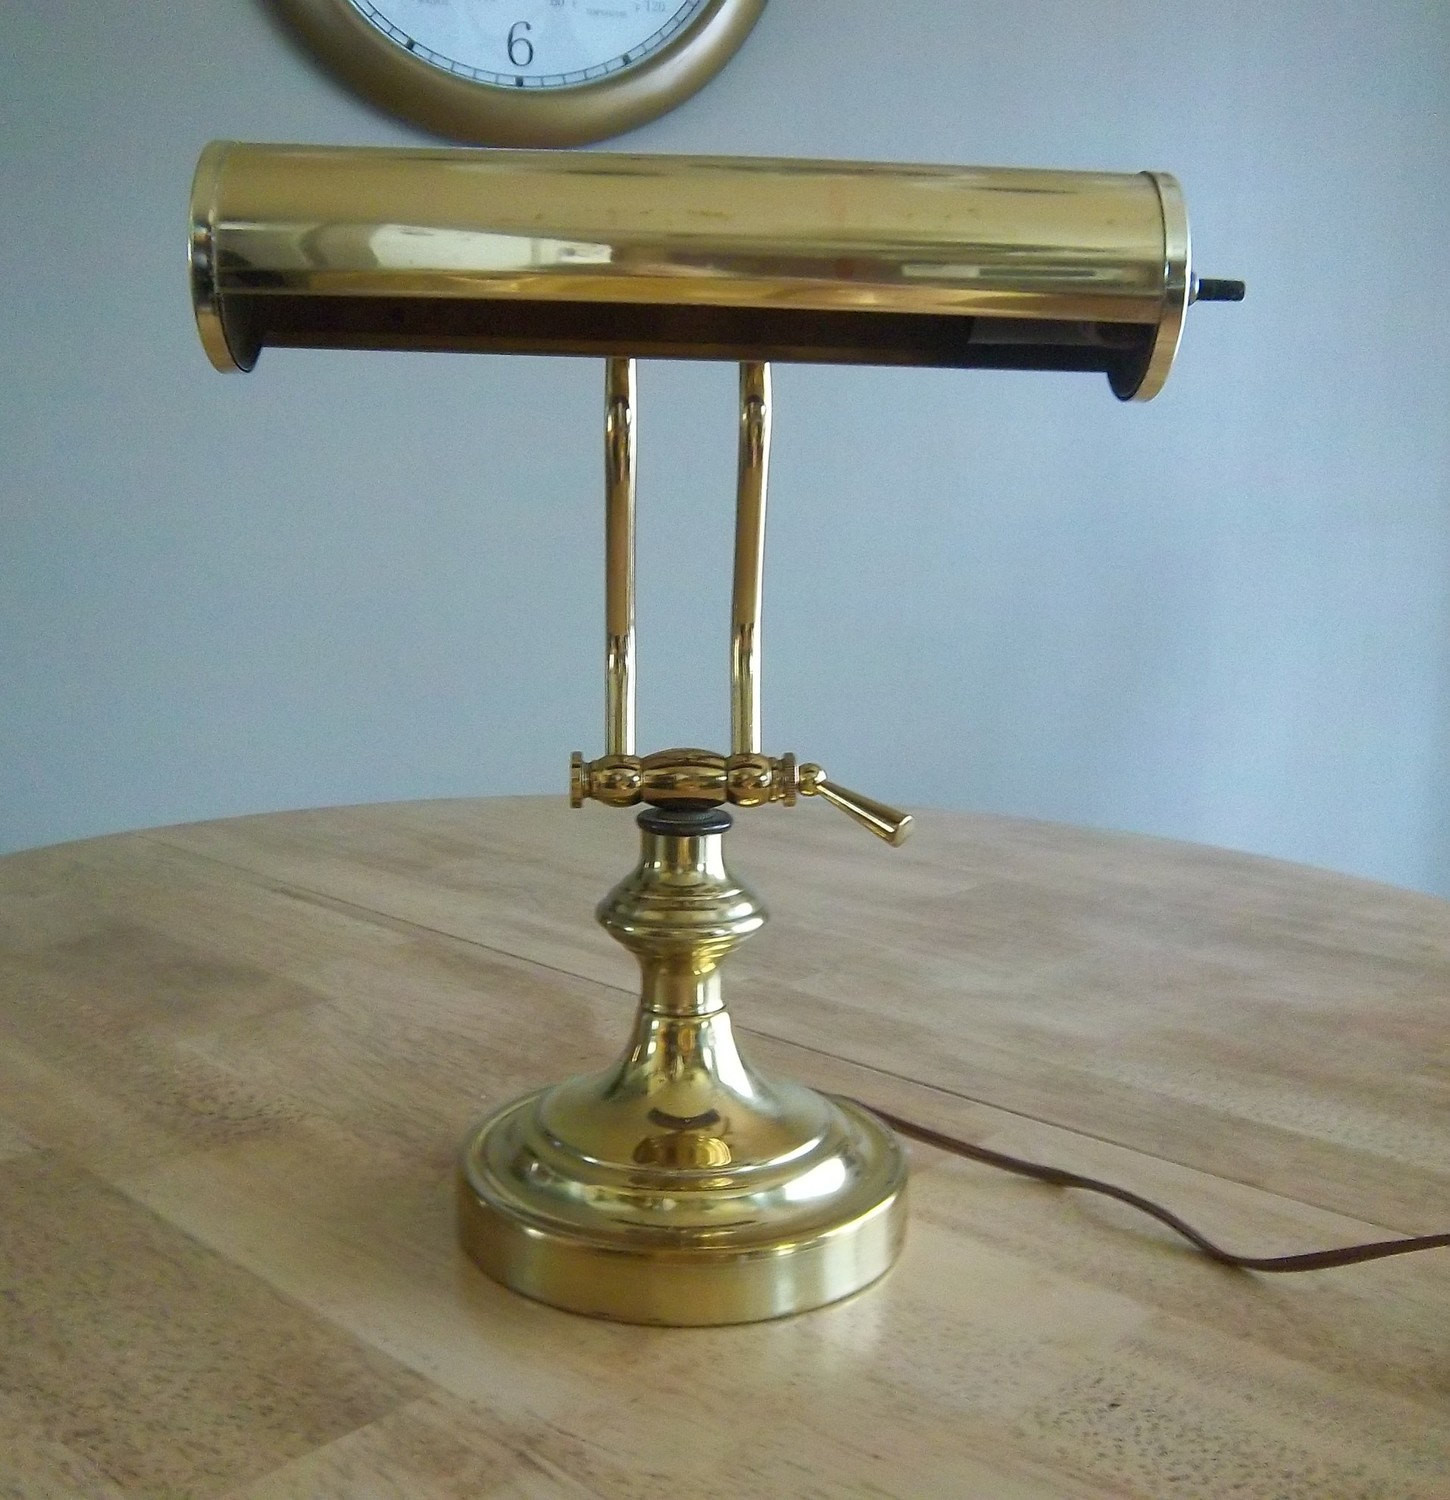 Best ideas about Vintage Desk Lamp . Save or Pin Vintage Brass Library Desk Lamp Now.